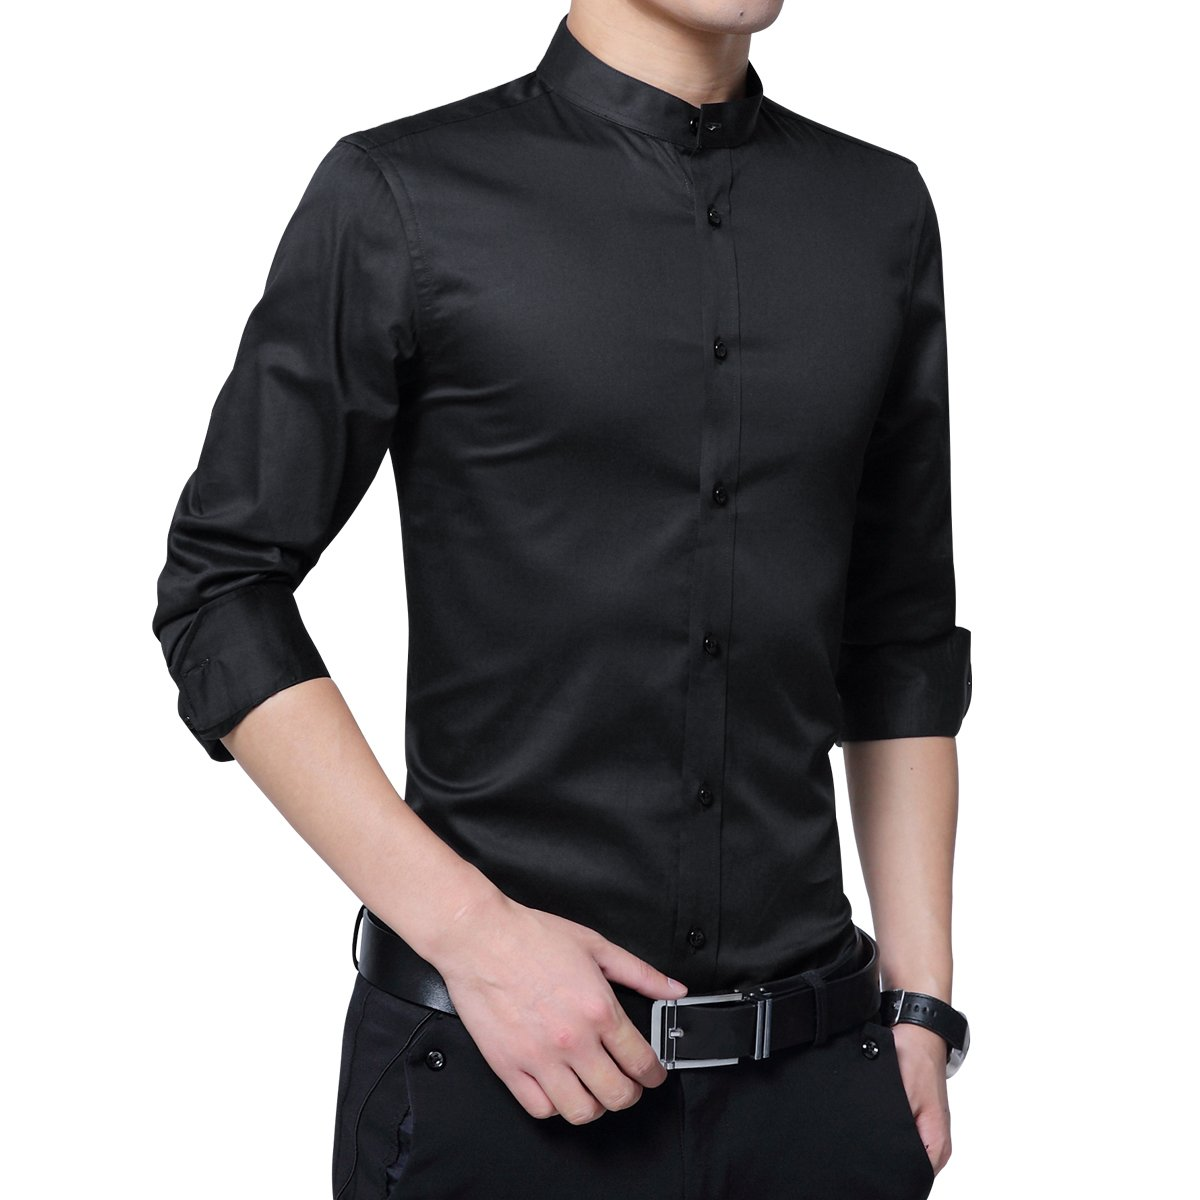 2b45ad3de Boyland Men's Dress Shirt Banded Collar Long Sleeve Slim Fit Tuxedo Shirt  Cotton at Amazon Men's Clothing store: